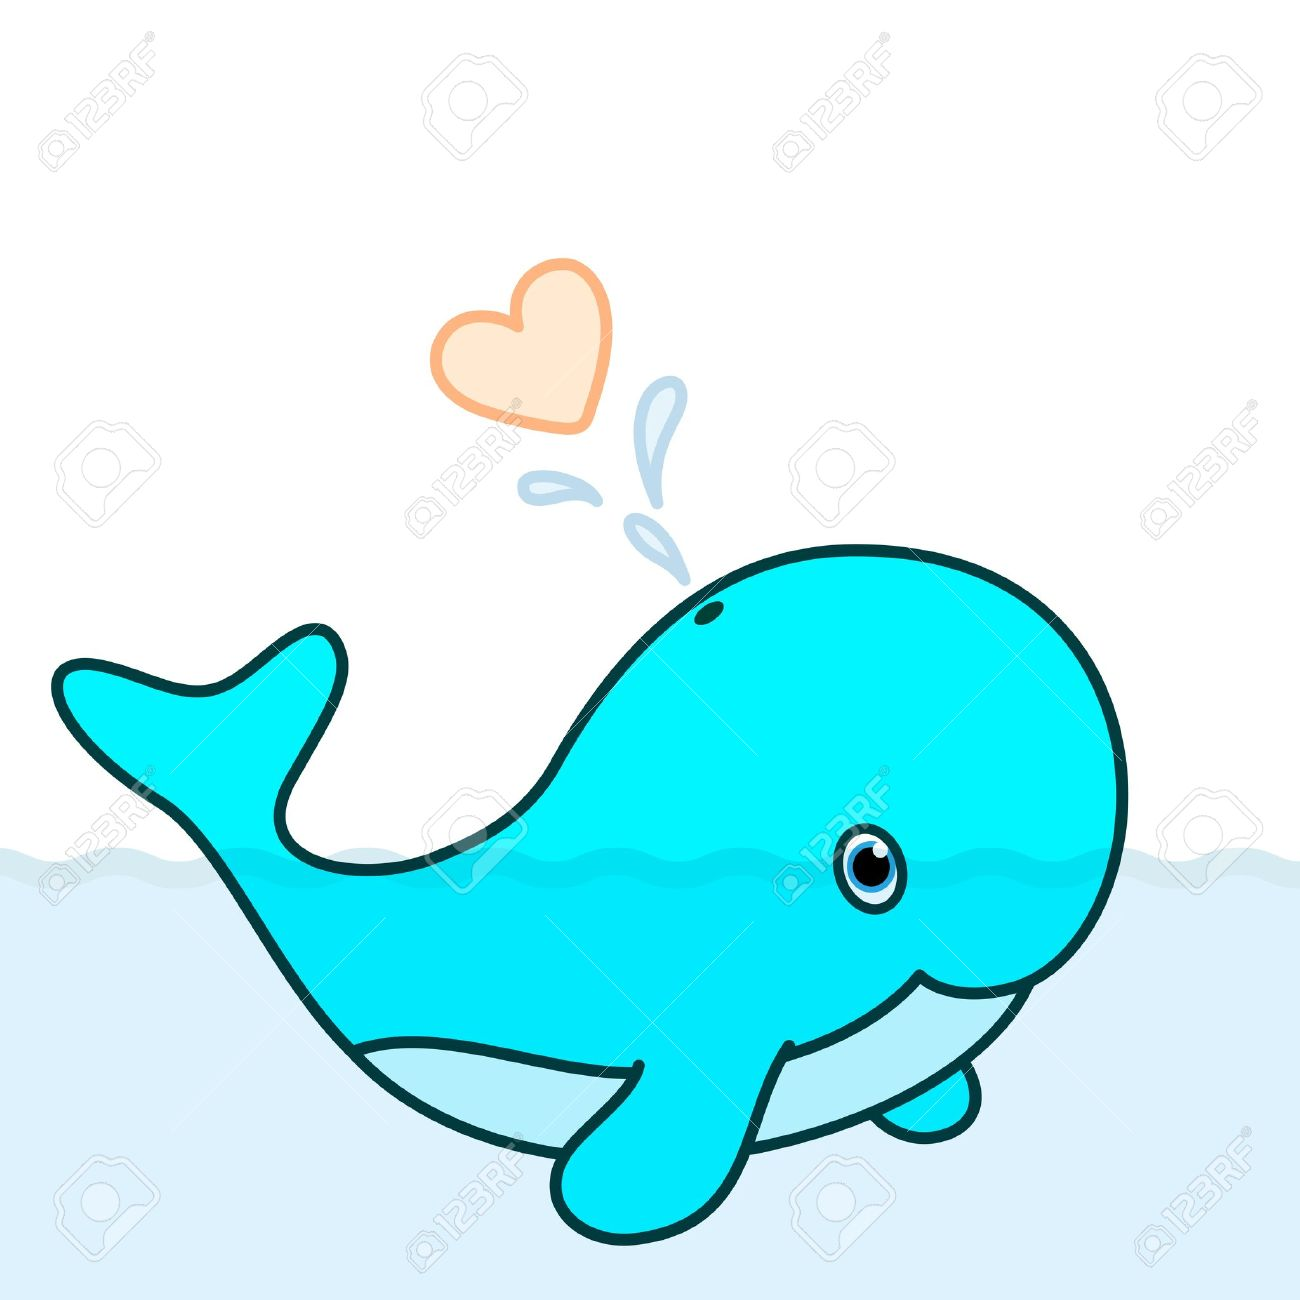 Cute whale in water cartoon isolated illustration stock photography - Cartoon Whale Cute Baby Whale Cartoon Character Blowing A Heart Water Splash